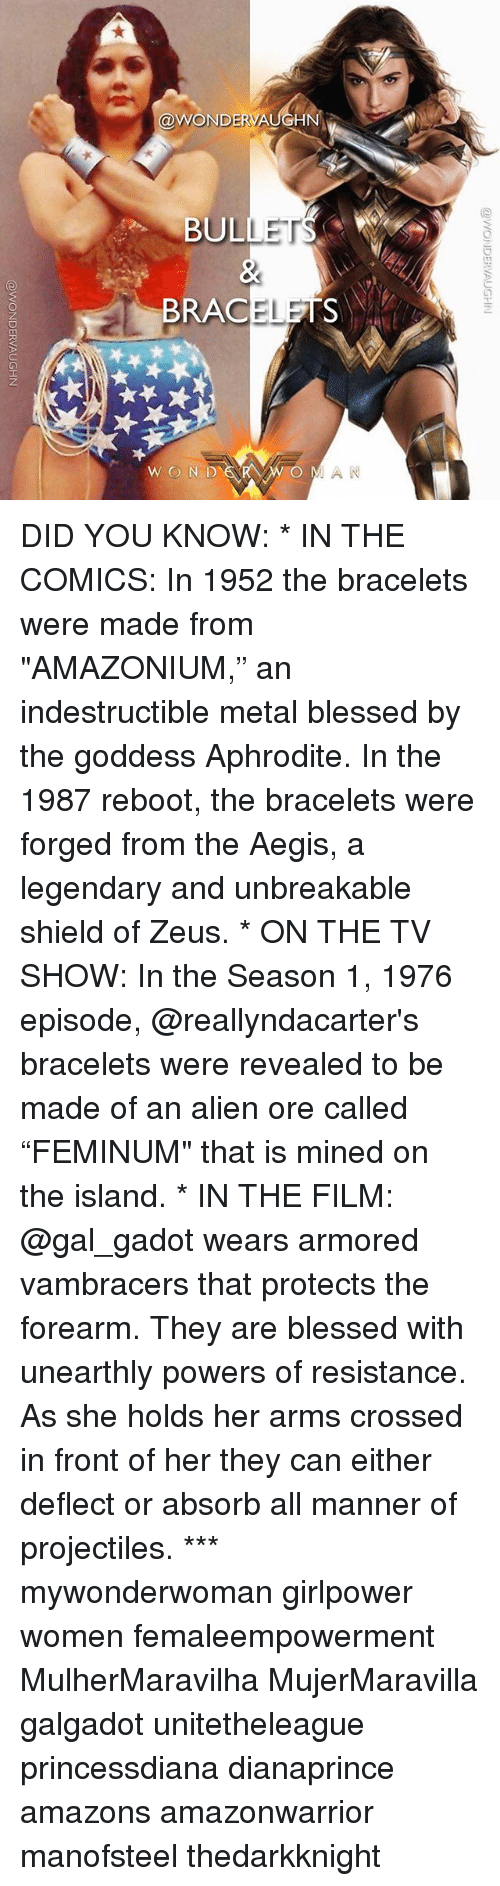 """Bulletted: @WONDERVA  BULLET  BRACELETS  WON D  O MAN DID YOU KNOW: * IN THE COMICS: In 1952 the bracelets were made from """"AMAZONIUM,"""" an indestructible metal blessed by the goddess Aphrodite. In the 1987 reboot, the bracelets were forged from the Aegis, a legendary and unbreakable shield of Zeus. * ON THE TV SHOW: In the Season 1, 1976 episode, @reallyndacarter's bracelets were revealed to be made of an alien ore called """"FEMINUM"""" that is mined on the island. * IN THE FILM: @gal_gadot wears armored vambracers that protects the forearm. They are blessed with unearthly powers of resistance. As she holds her arms crossed in front of her they can either deflect or absorb all manner of projectiles. *** mywonderwoman girlpower women femaleempowerment MulherMaravilha MujerMaravilla galgadot unitetheleague princessdiana dianaprince amazons amazonwarrior manofsteel thedarkknight"""